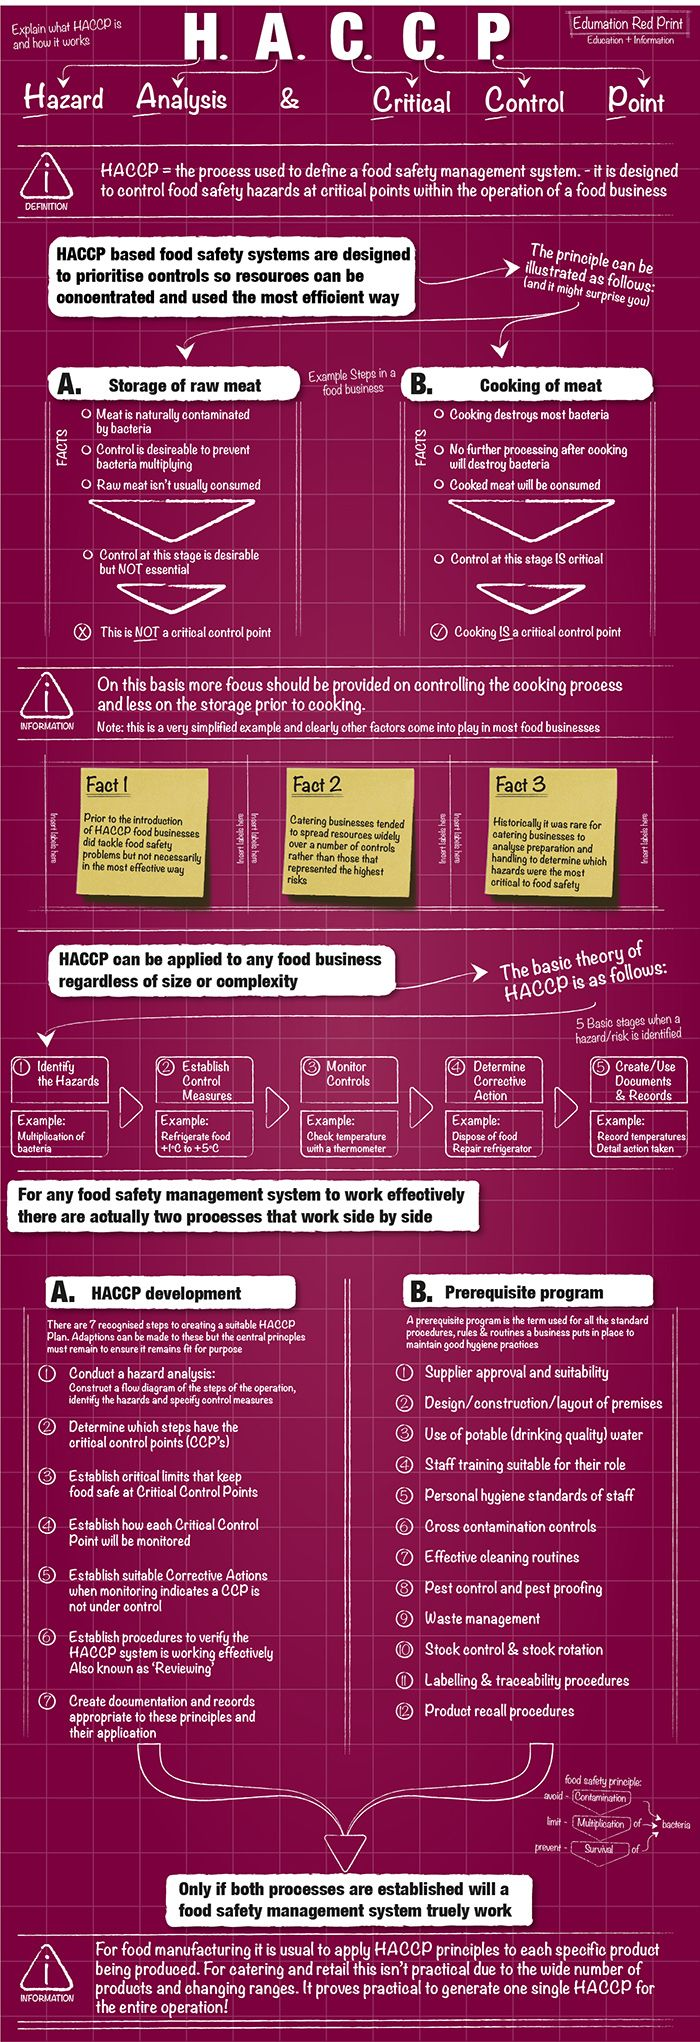 86 best haccp images on pinterest food safety chart and food science